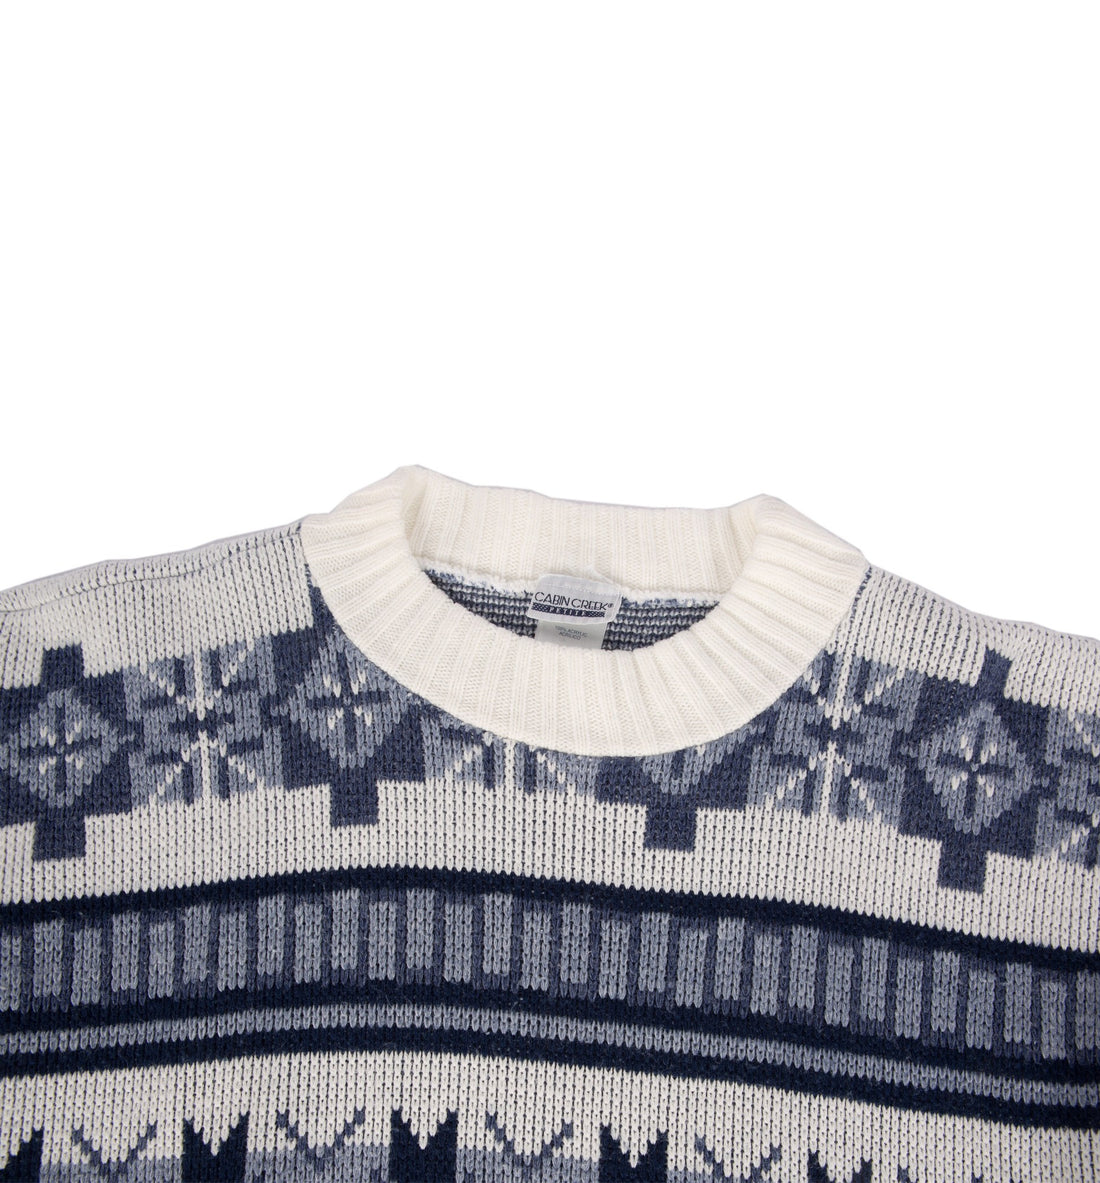 Vintage Blue/White Knit Pullover Ski Sweater - Vintage - Iron and Resin